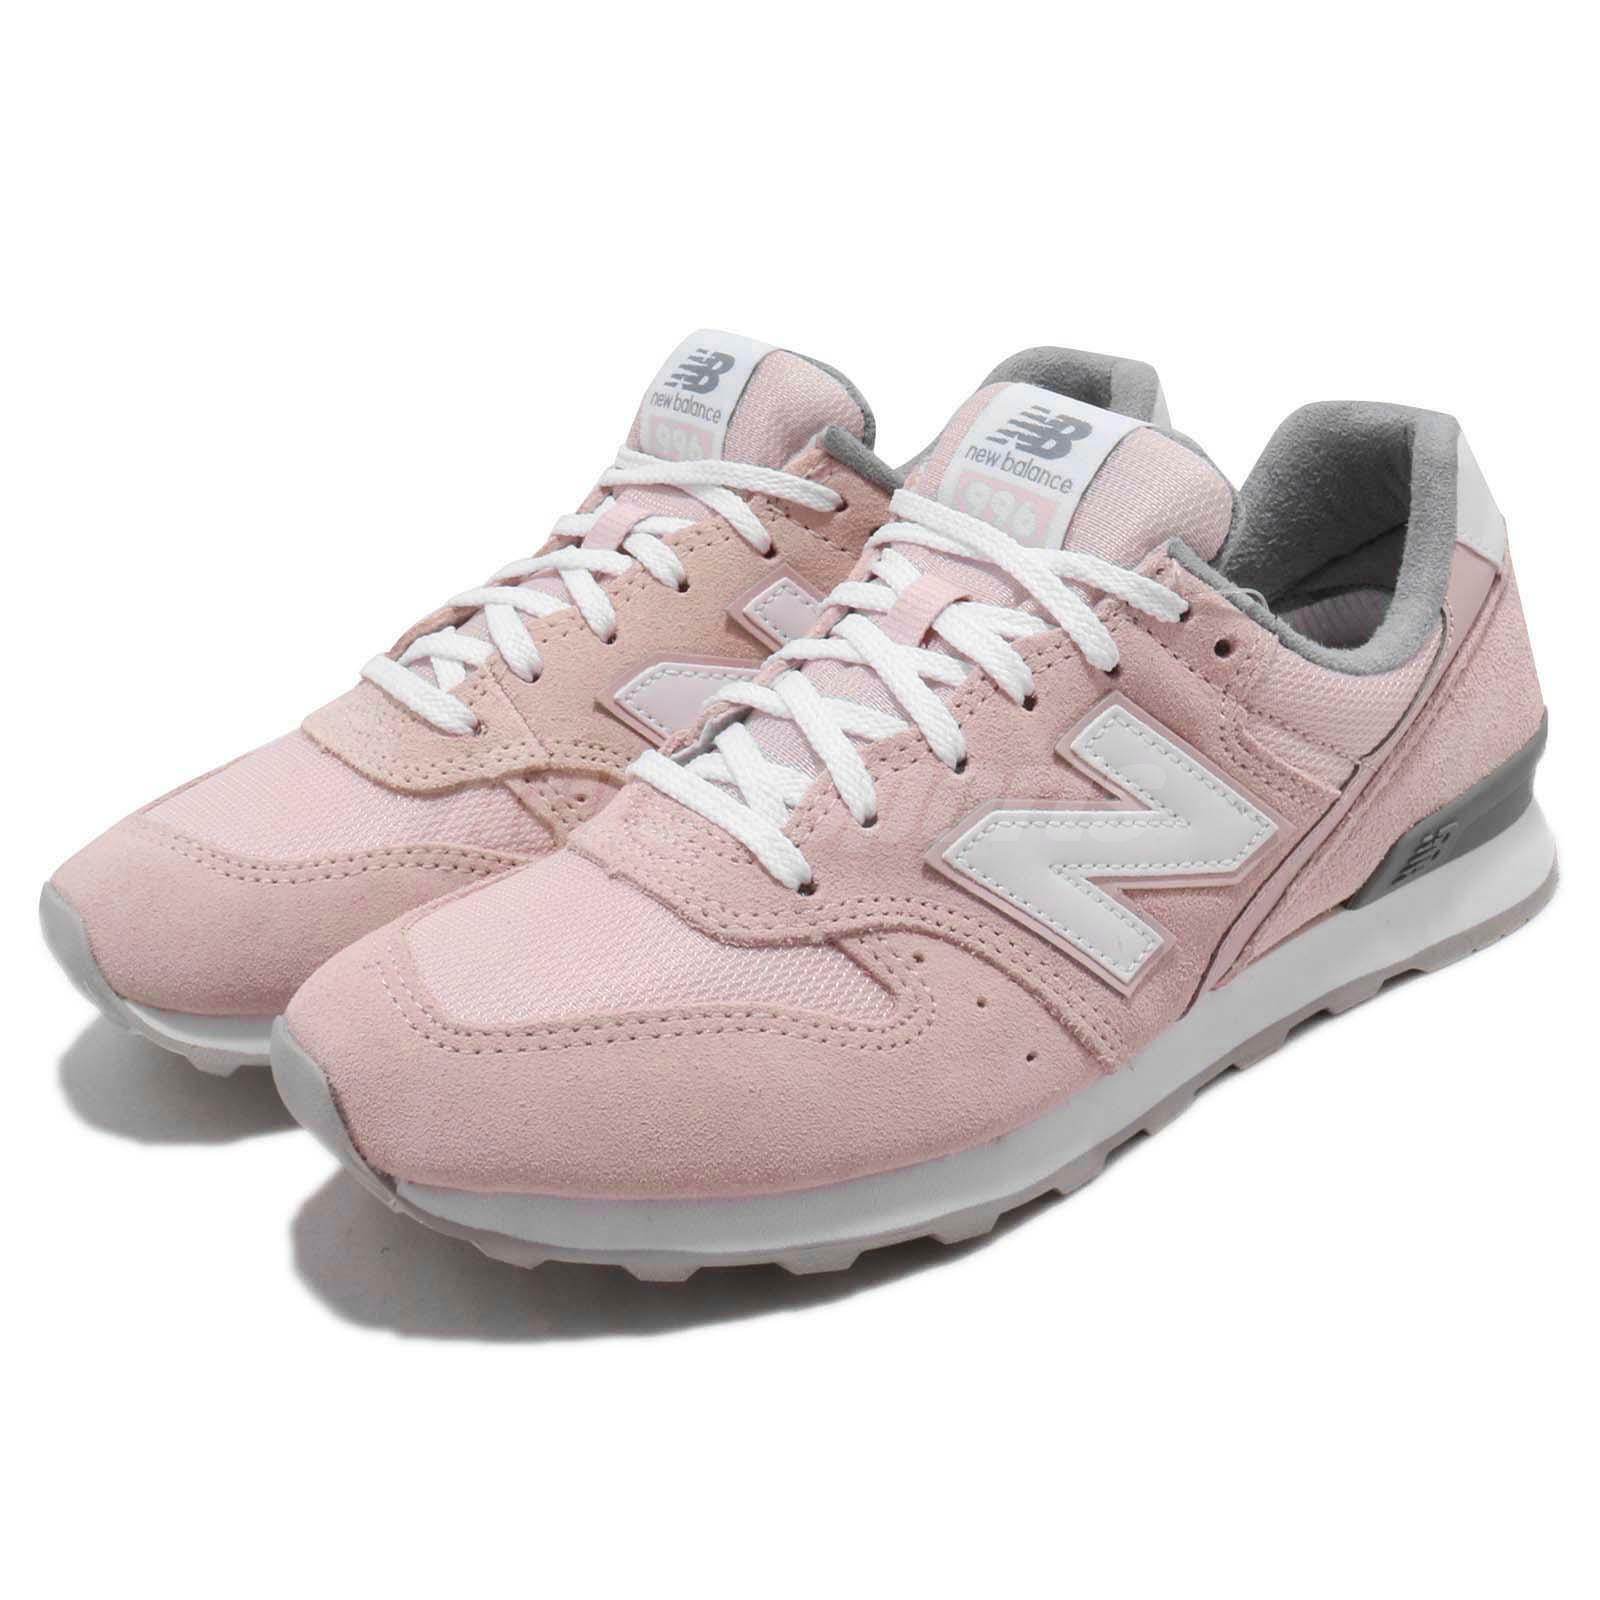 New Balance WR996ACP D Wide Pink White Women Running shoes Sneakers WR996ACPD